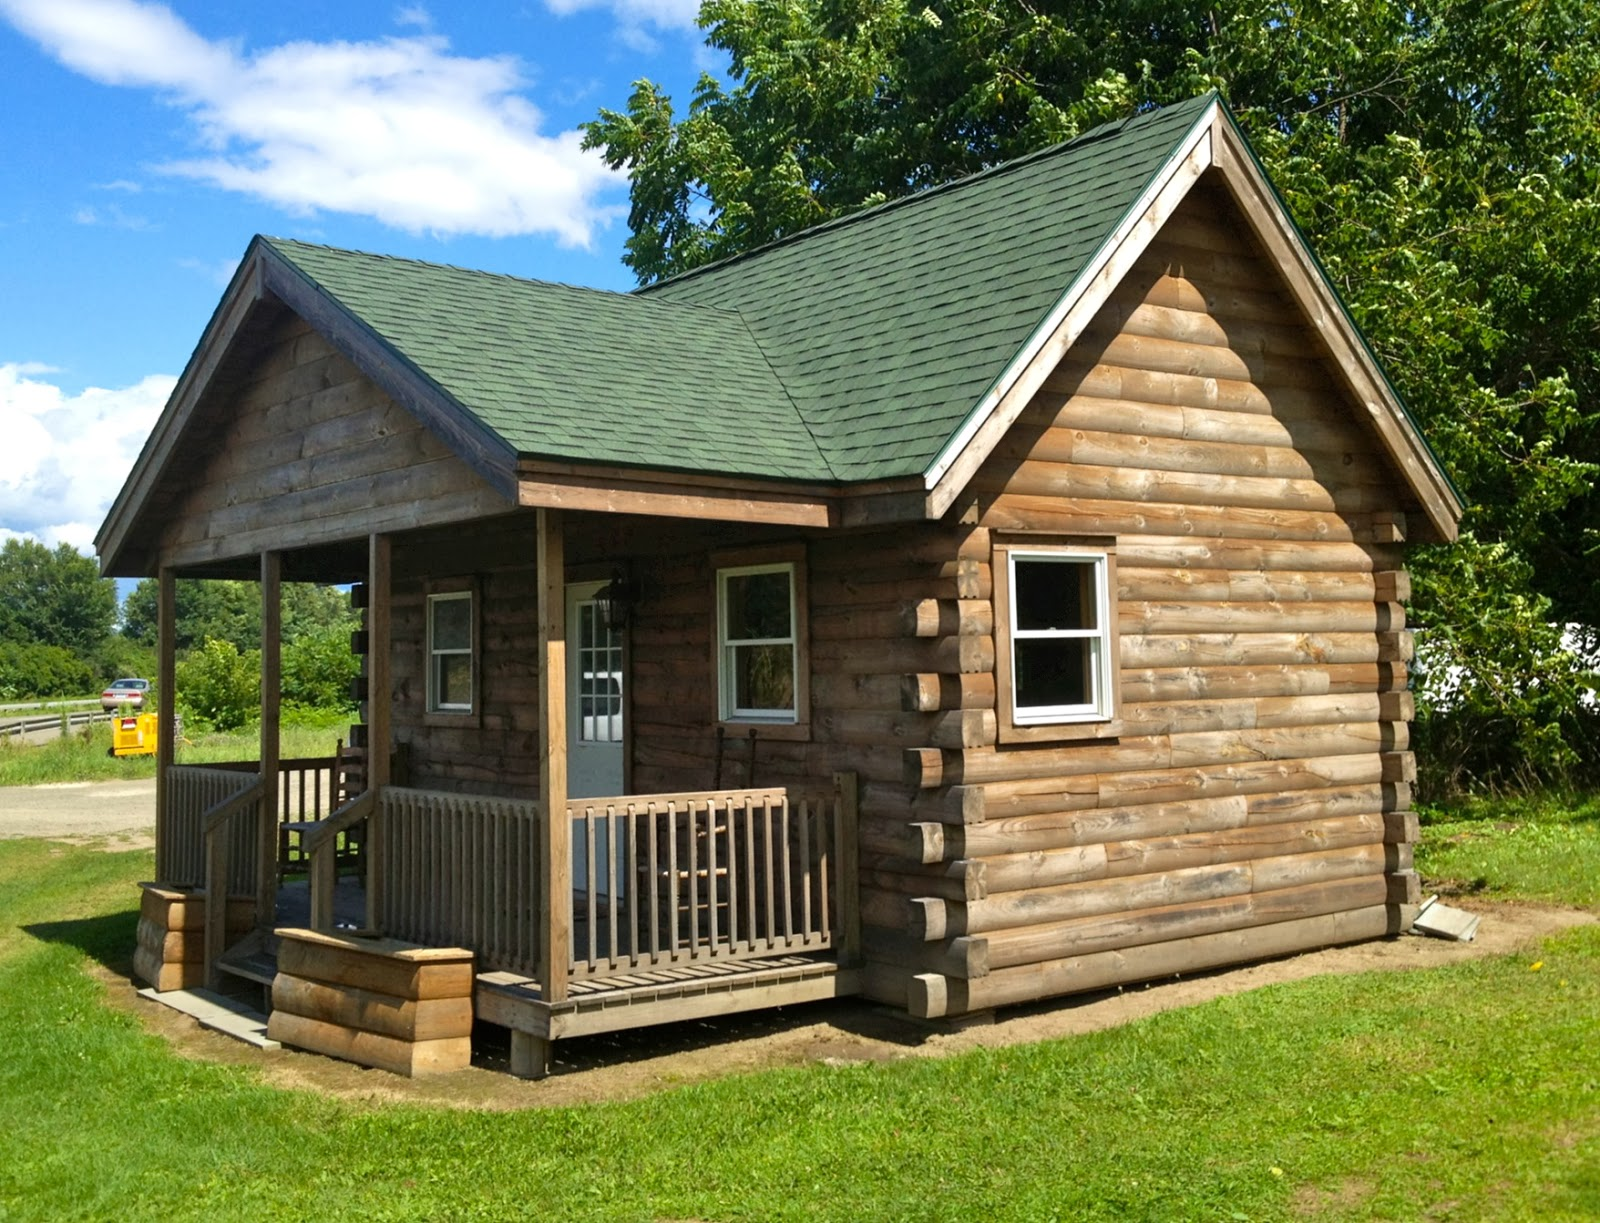 Small scale homes tiny home near binghamton ny for Small house exterior